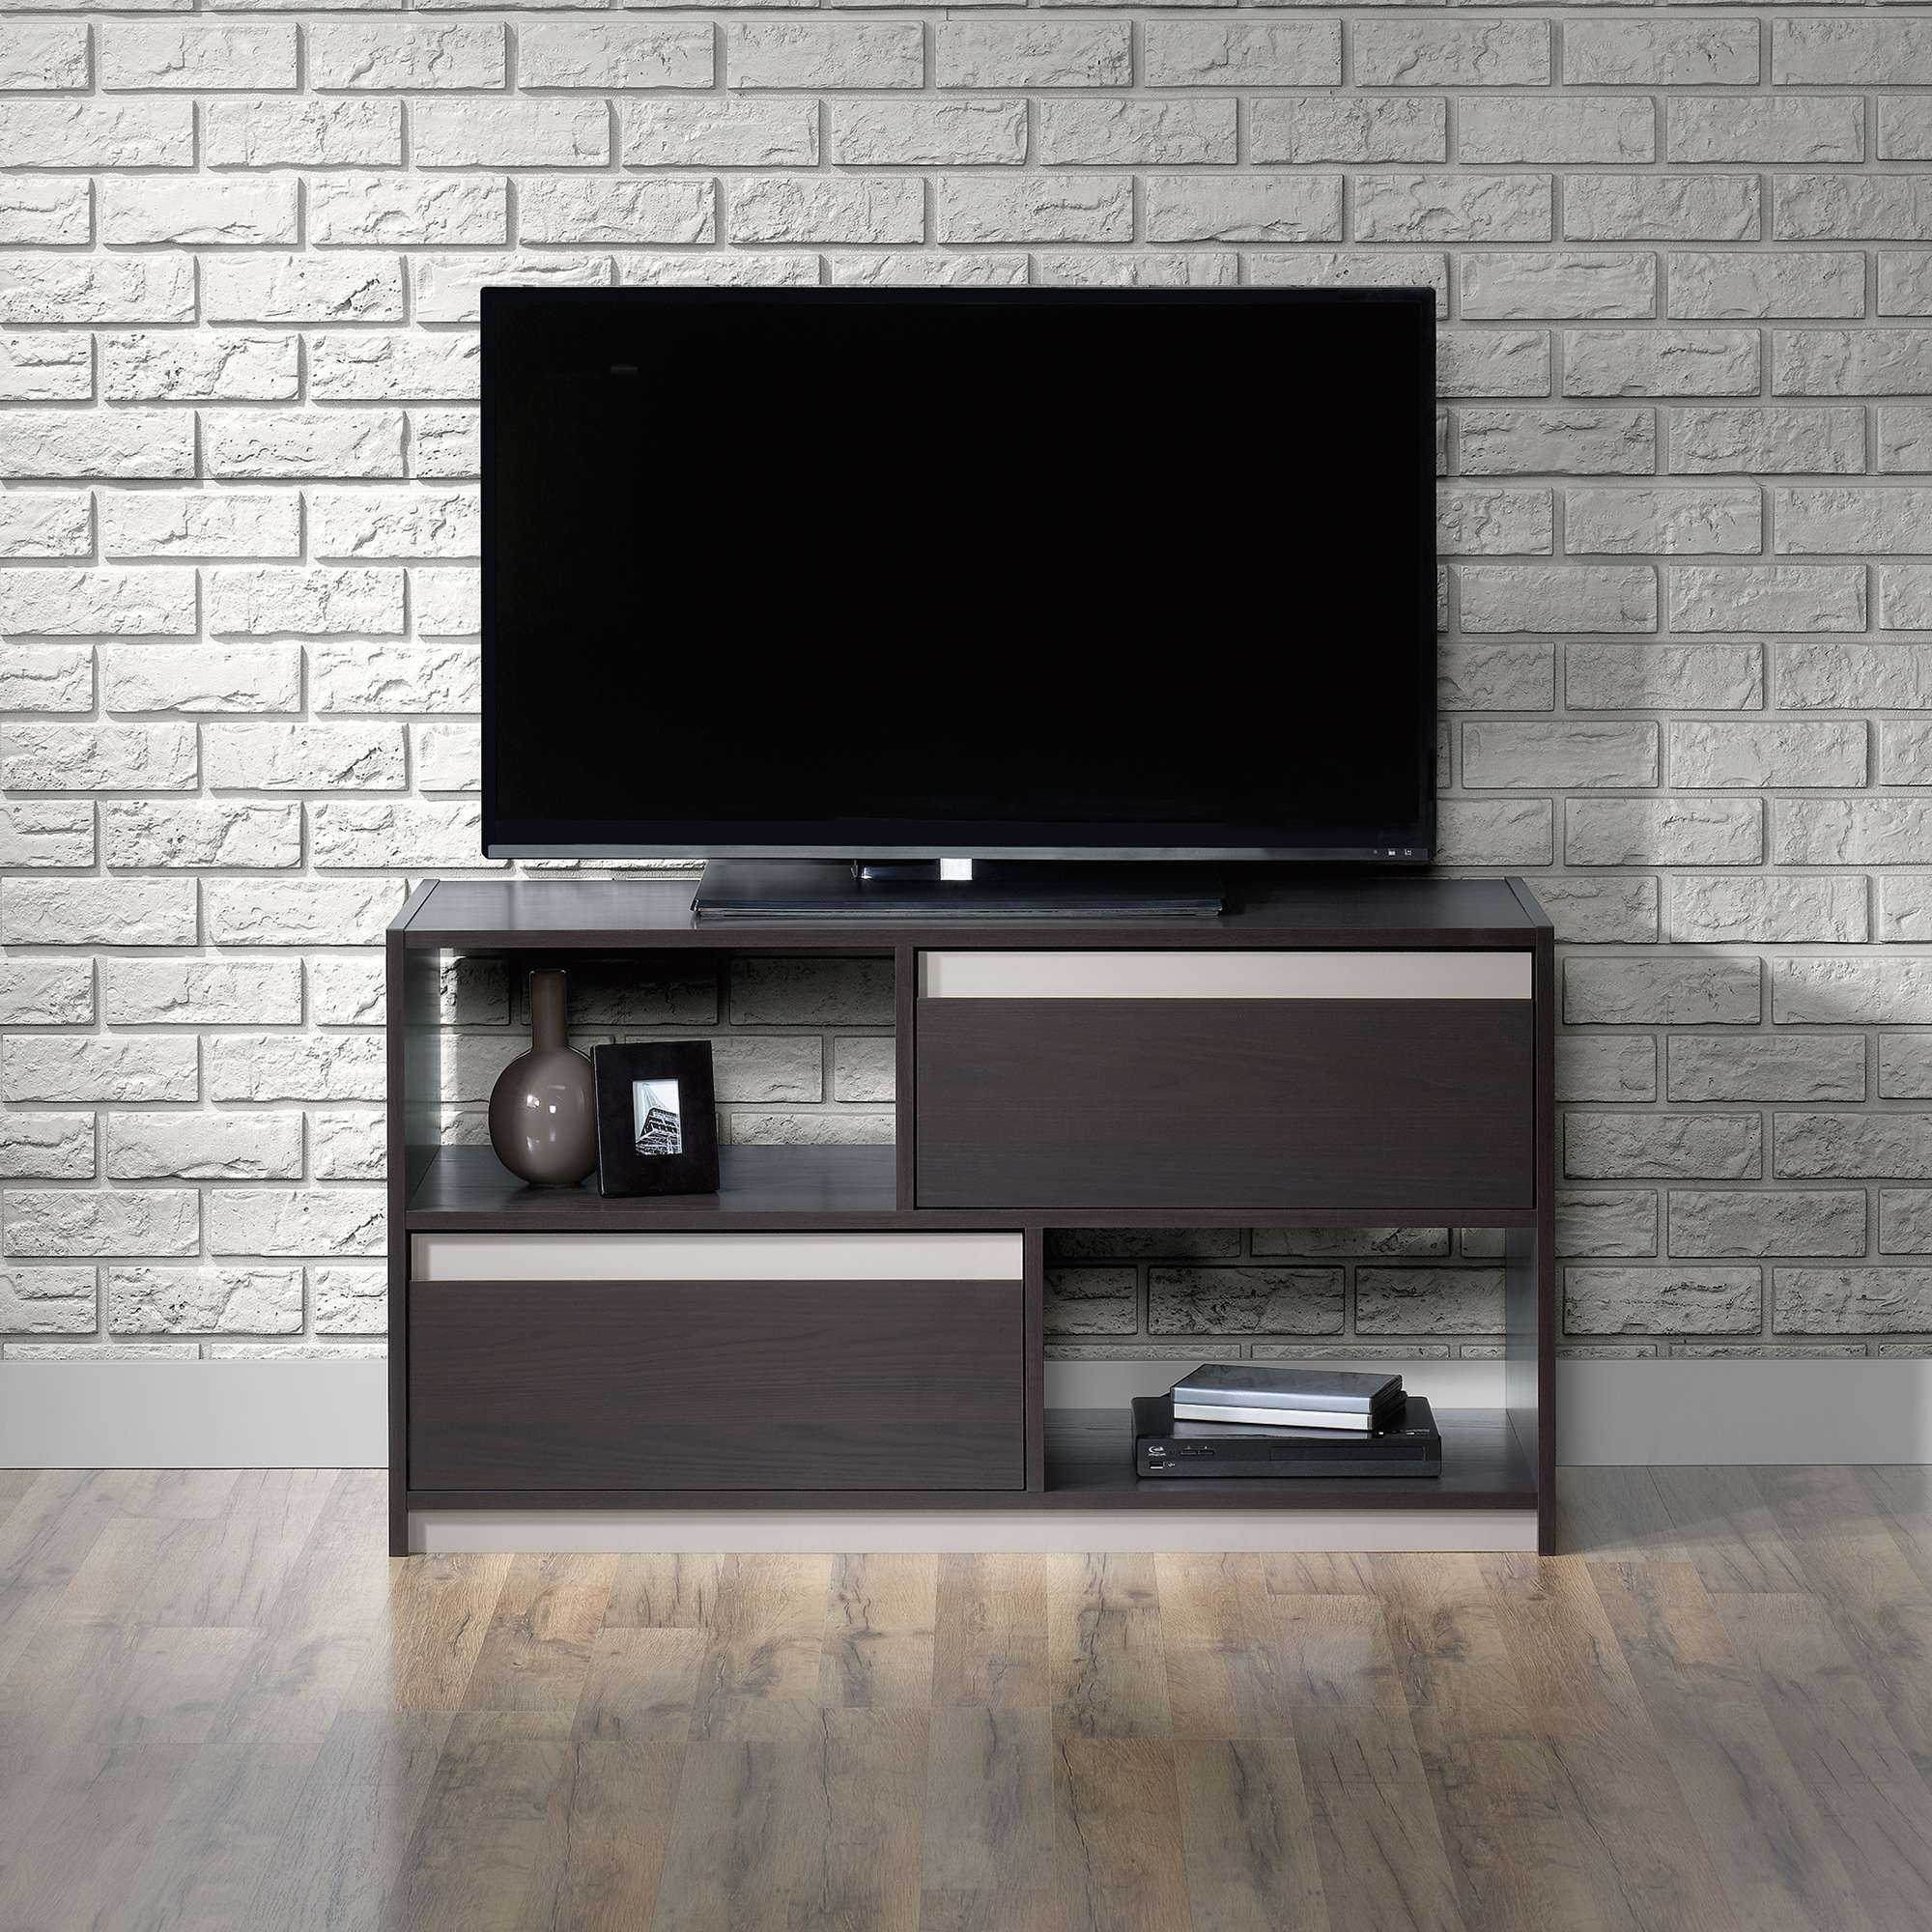 Square1 | Tv Stand | 418503 | Sauder Intended For Square Tv Stands (View 13 of 15)